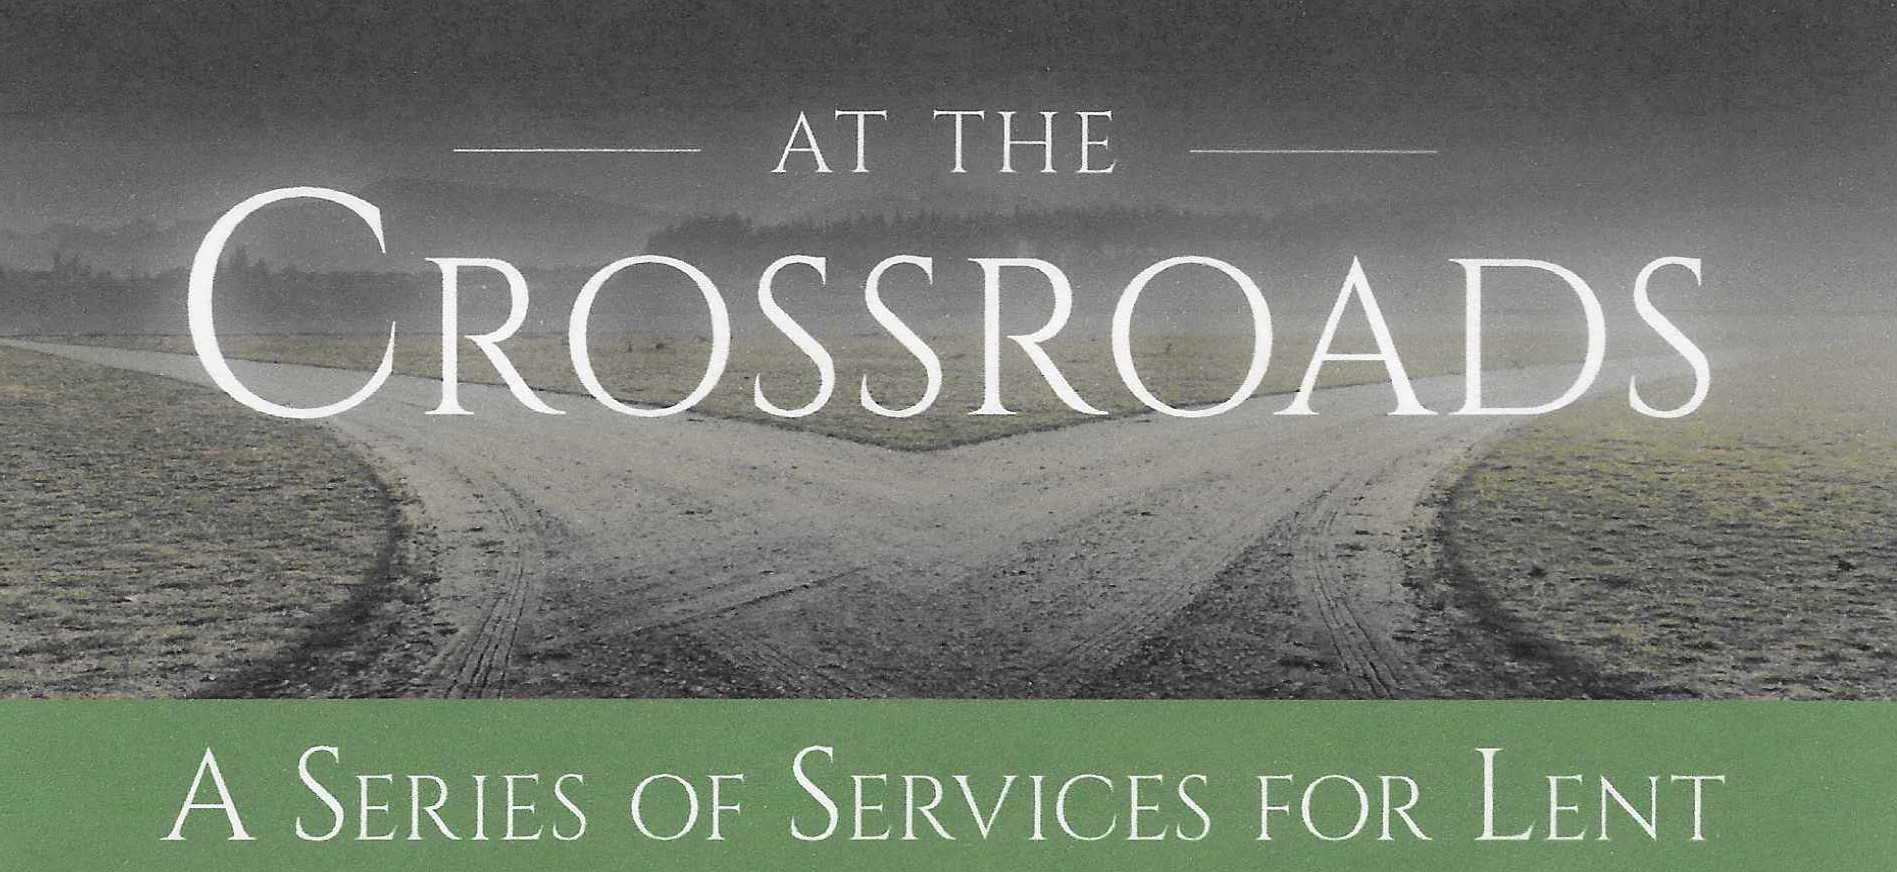 Lent- At the Crossroads Series